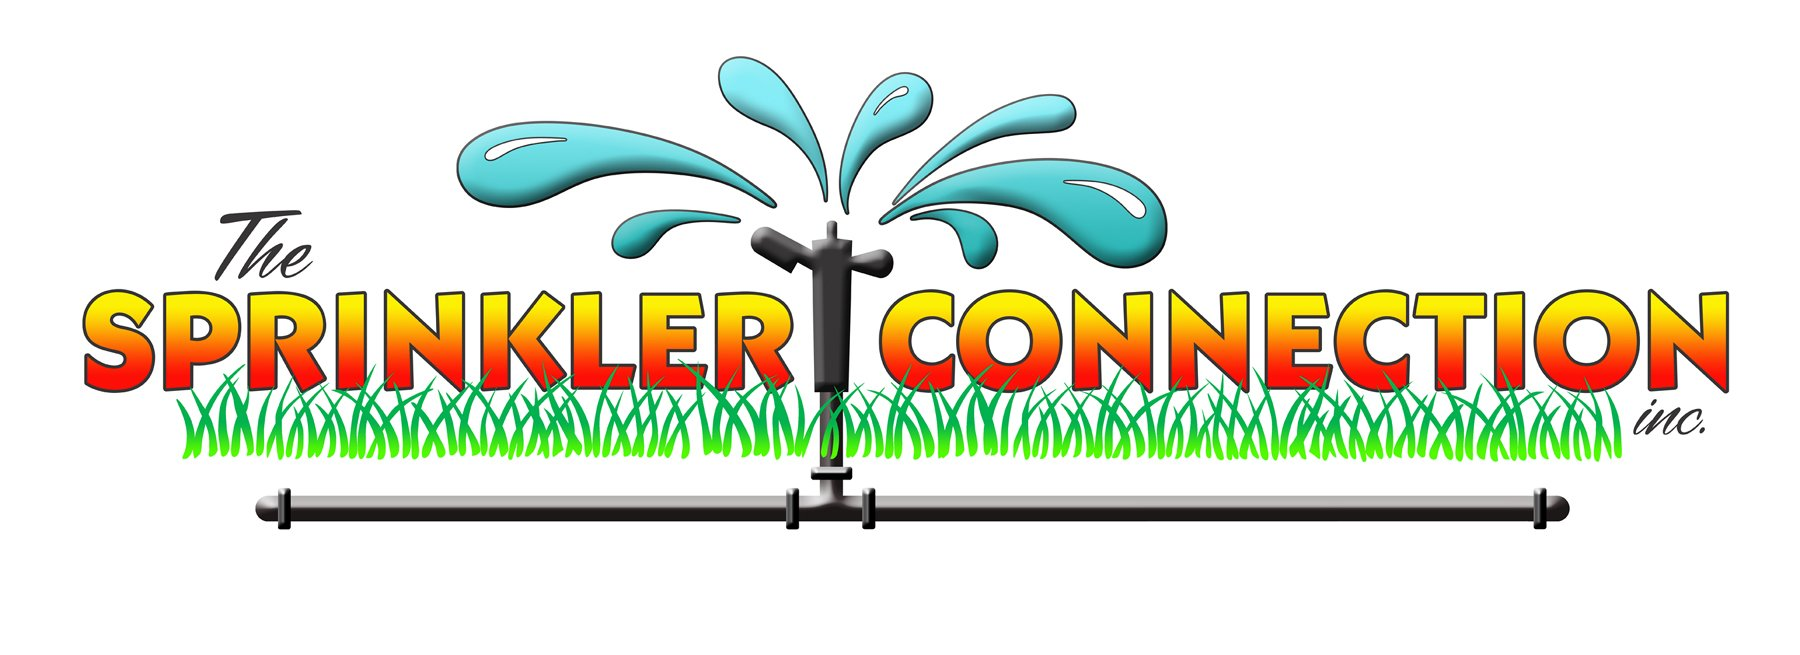 The Sprinkler Connection Inc.